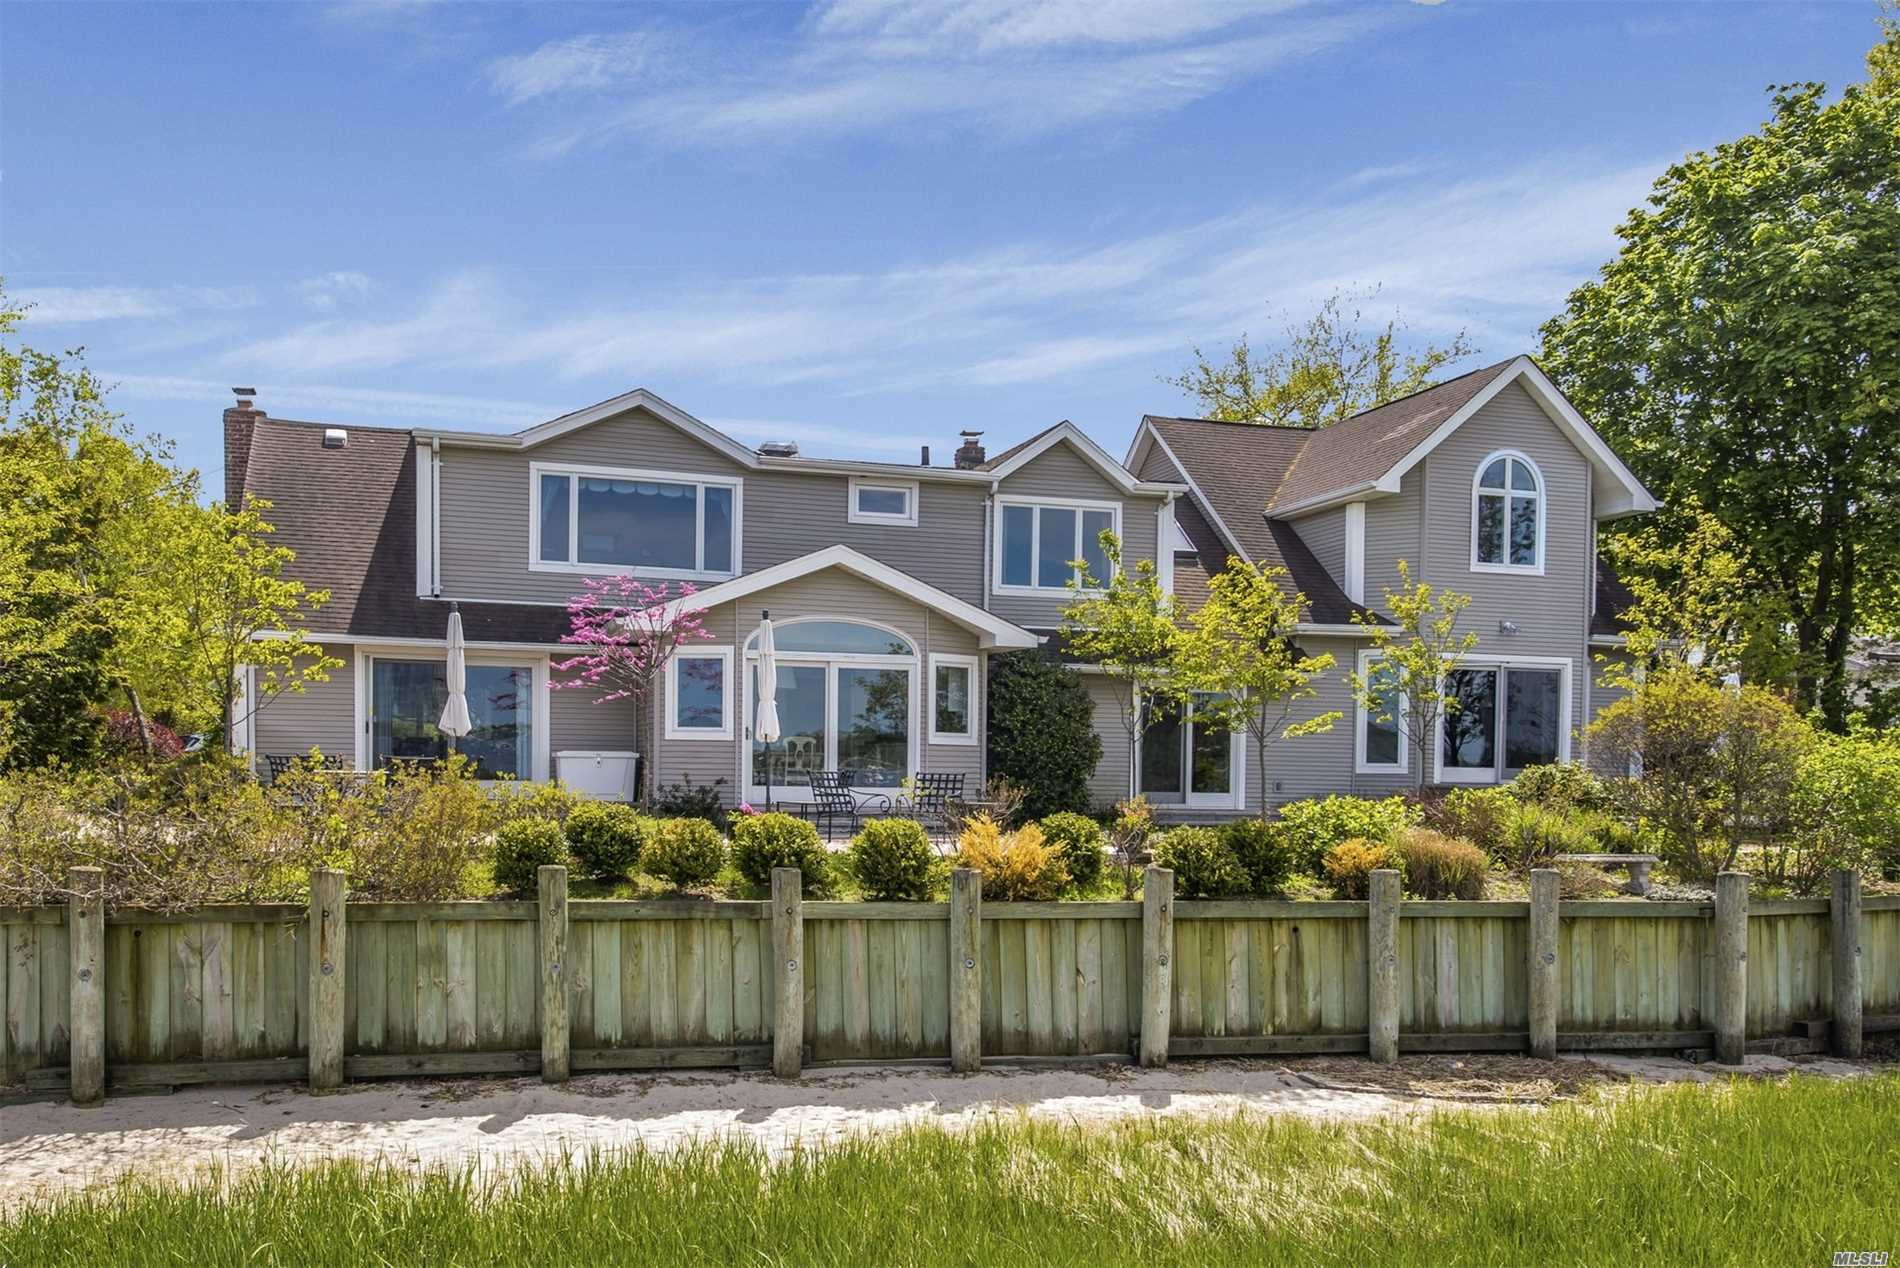 Fabulous 4 Bedroom Home Directly On The Water. New Terraces And Plantings Make It A Perfect Summer Destination. Water Views Over Oyster Bay Harbor From All Rooms. New Eik. Make Every Day A Vacation In This Special Home. Get In Before The Summer!!